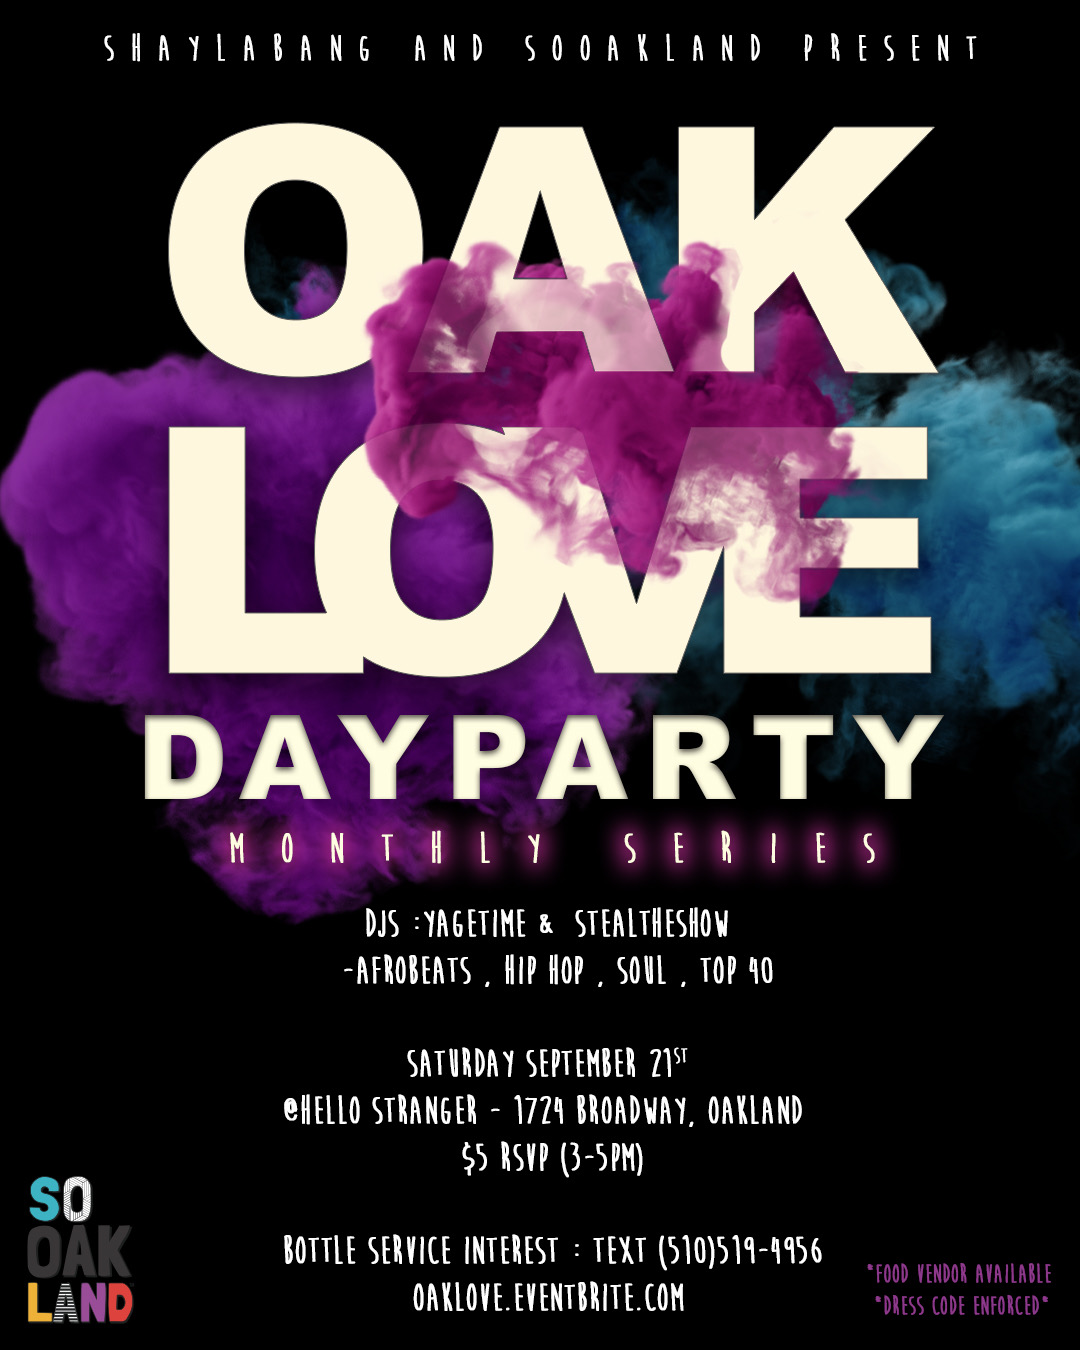 A new monthly series day party about celebrating the beautiful vibes of Oakland.  Sounds by : YAGETME and STEALTHESHOW  HOSTED BY: SOOAKLAND   CLICK HERE FOR     3pm-5pm $5.00 w/ RSVP HERE    Bringjng you your favorite AfroBeats, Trap,Dancehall ,Neo Soul, BayArea feels and more  Food Vendor will be AVAILABLE !!! to satisfy your hunger while you dance ,sip ,and enjoy the OAKLOVE   For Bottle Service    text 5105194956